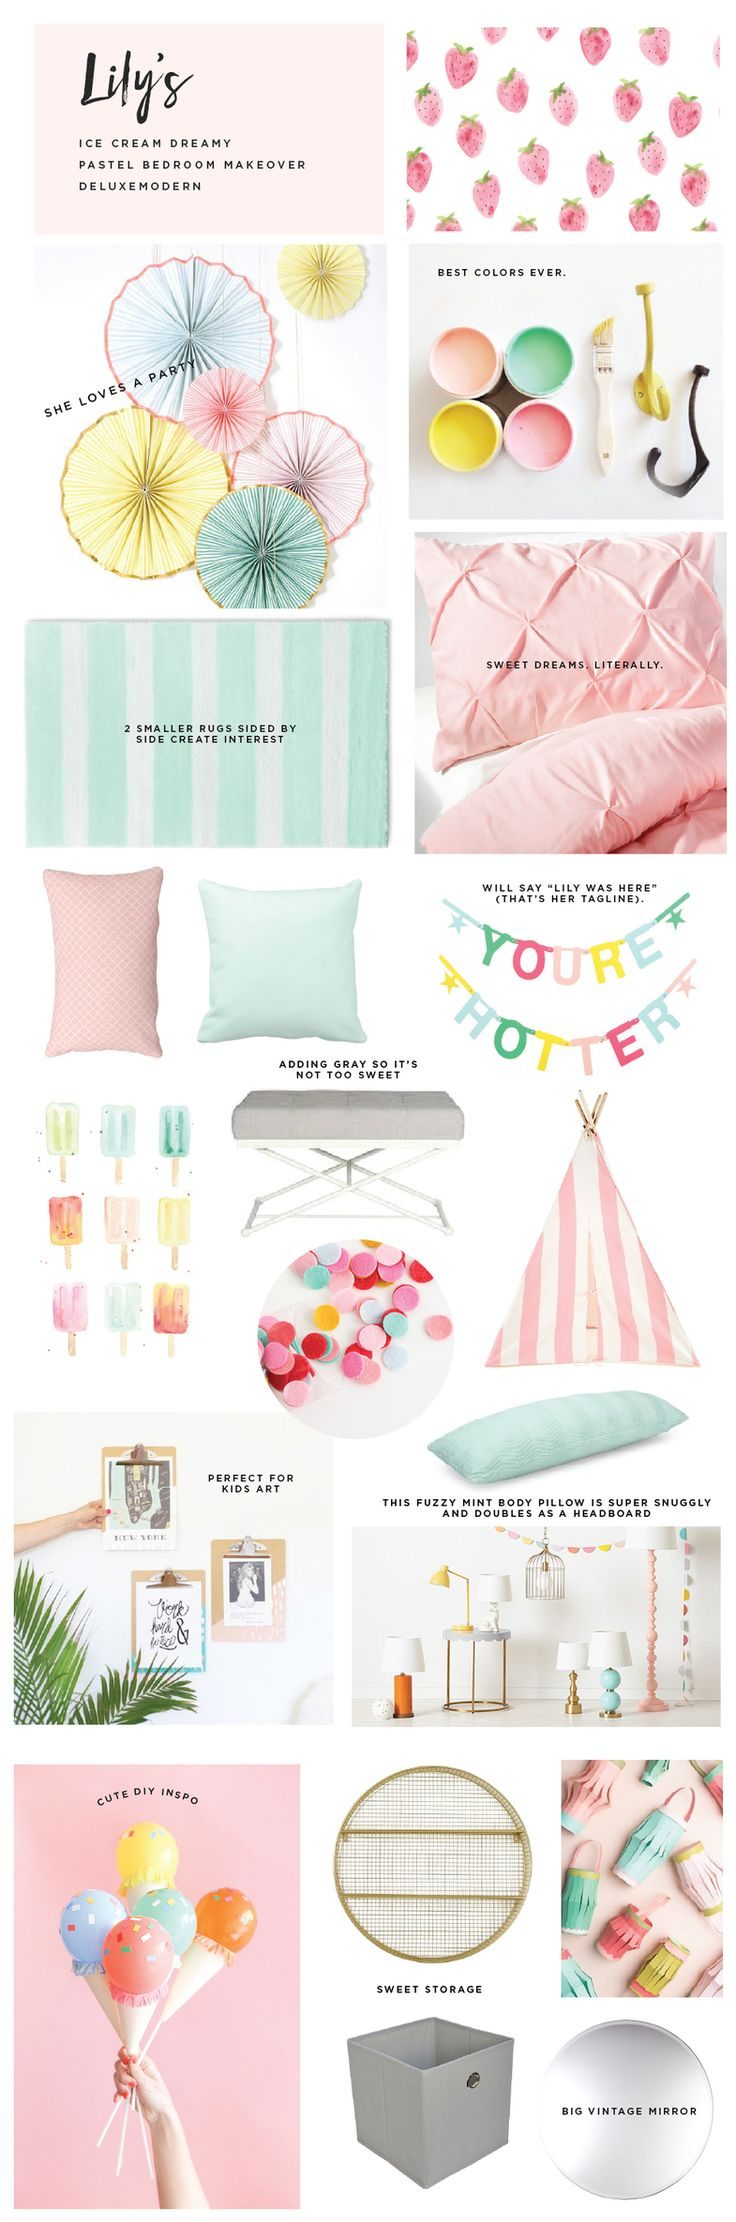 25 Best Ideas About Pastel Bedroom On Pinterest Pastel Room Bedroom Inspo And Grey Room